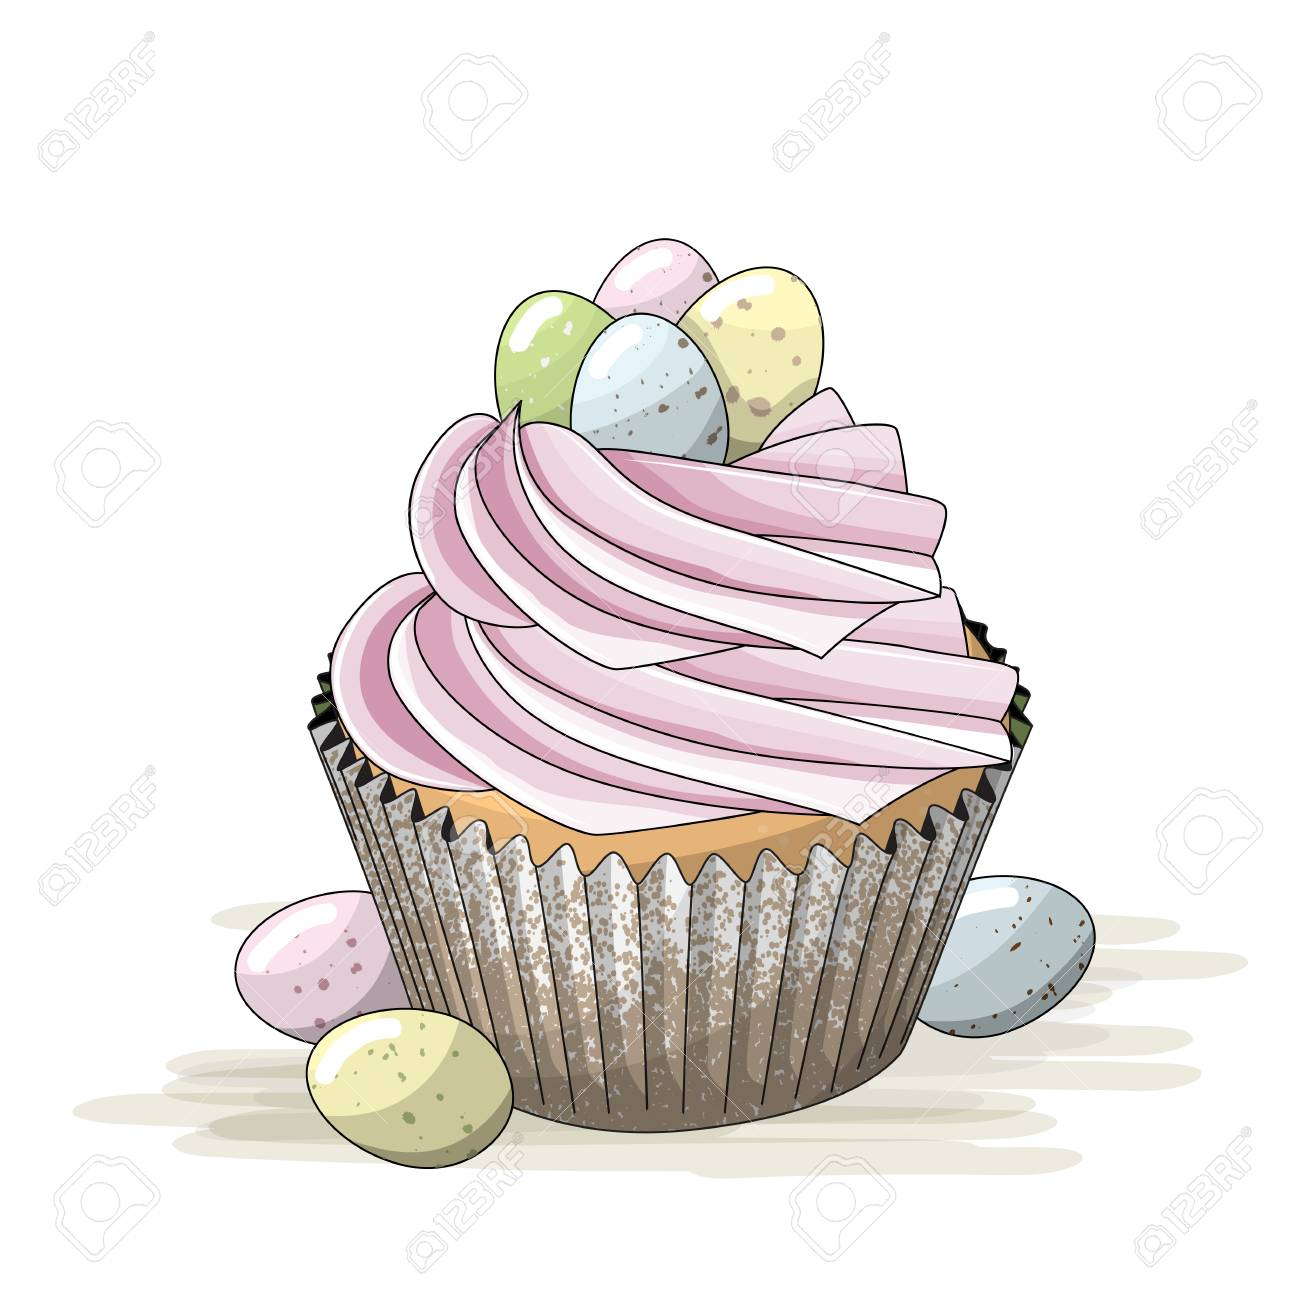 Easter motive, cupcake with pink cream and small colorful eggs,...